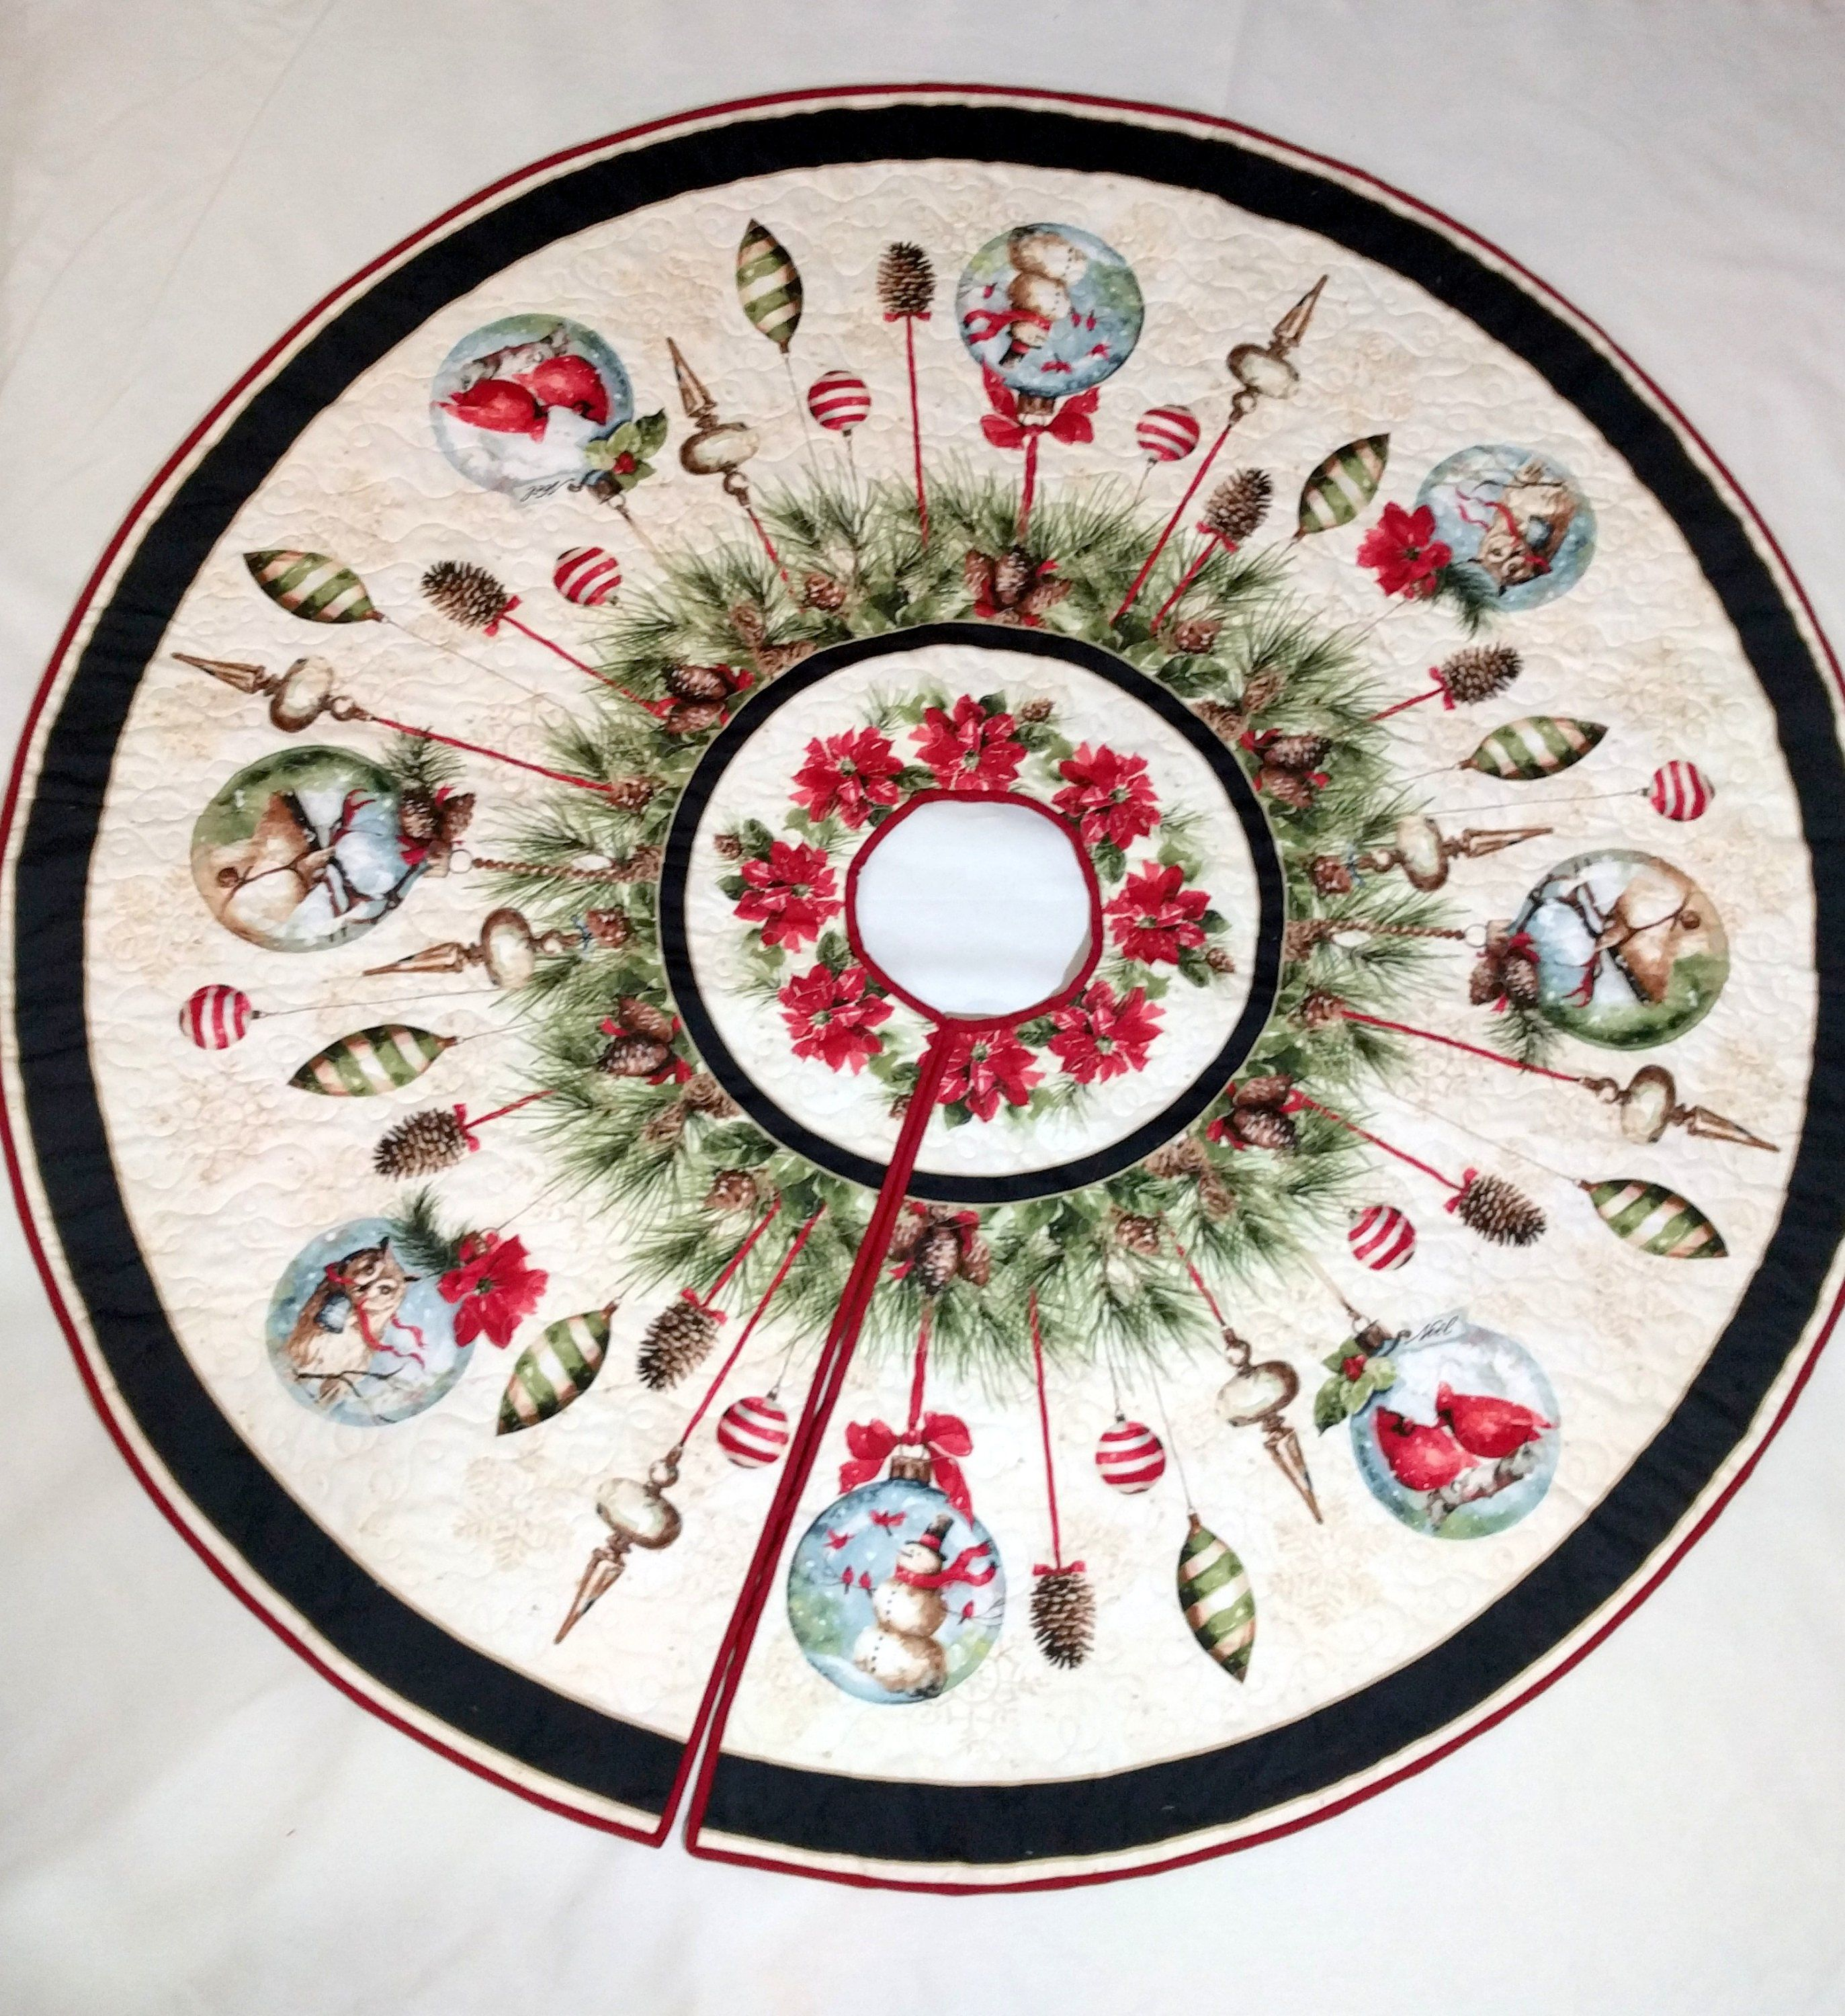 Handmade Round Appliqued Christmas Table Topper Felted Wool Bright Ornaments